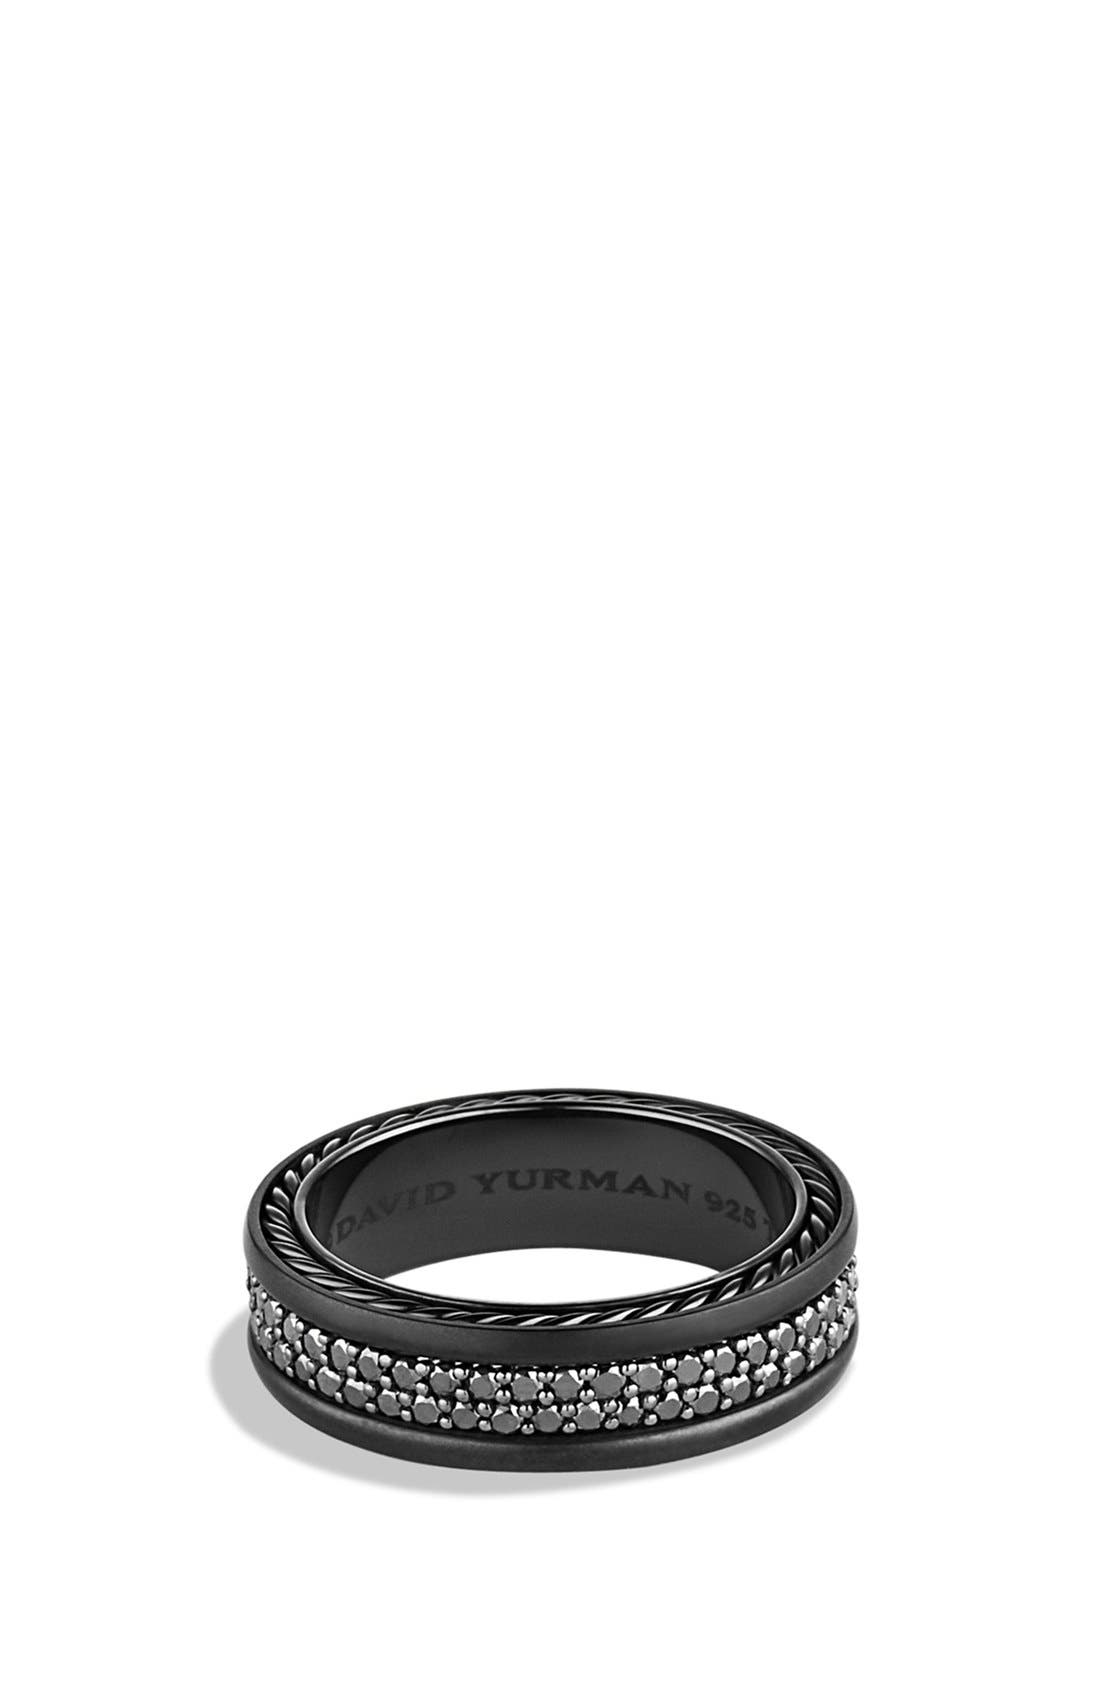 Delicieux David Yurman U0027Streamlineu0027 Two Row Band Ring With Gems U0026 Black Titanium